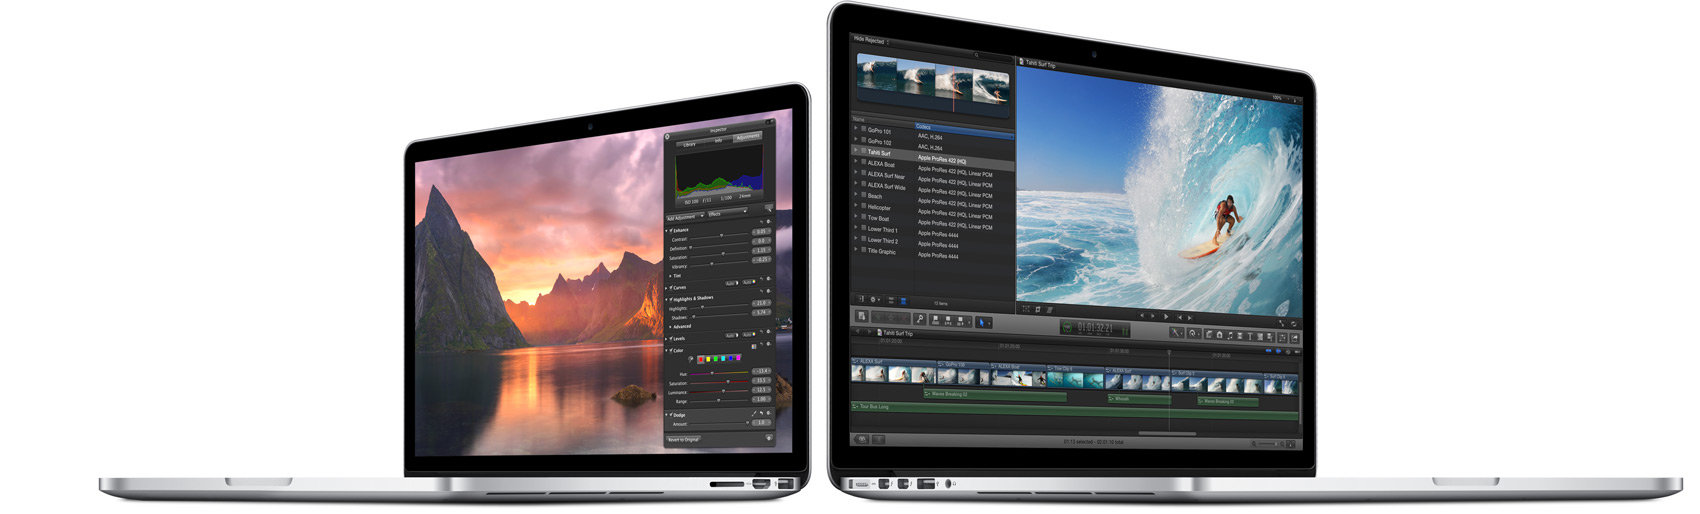 Apple: arrivano i nuovi Mac e Mavericks OS